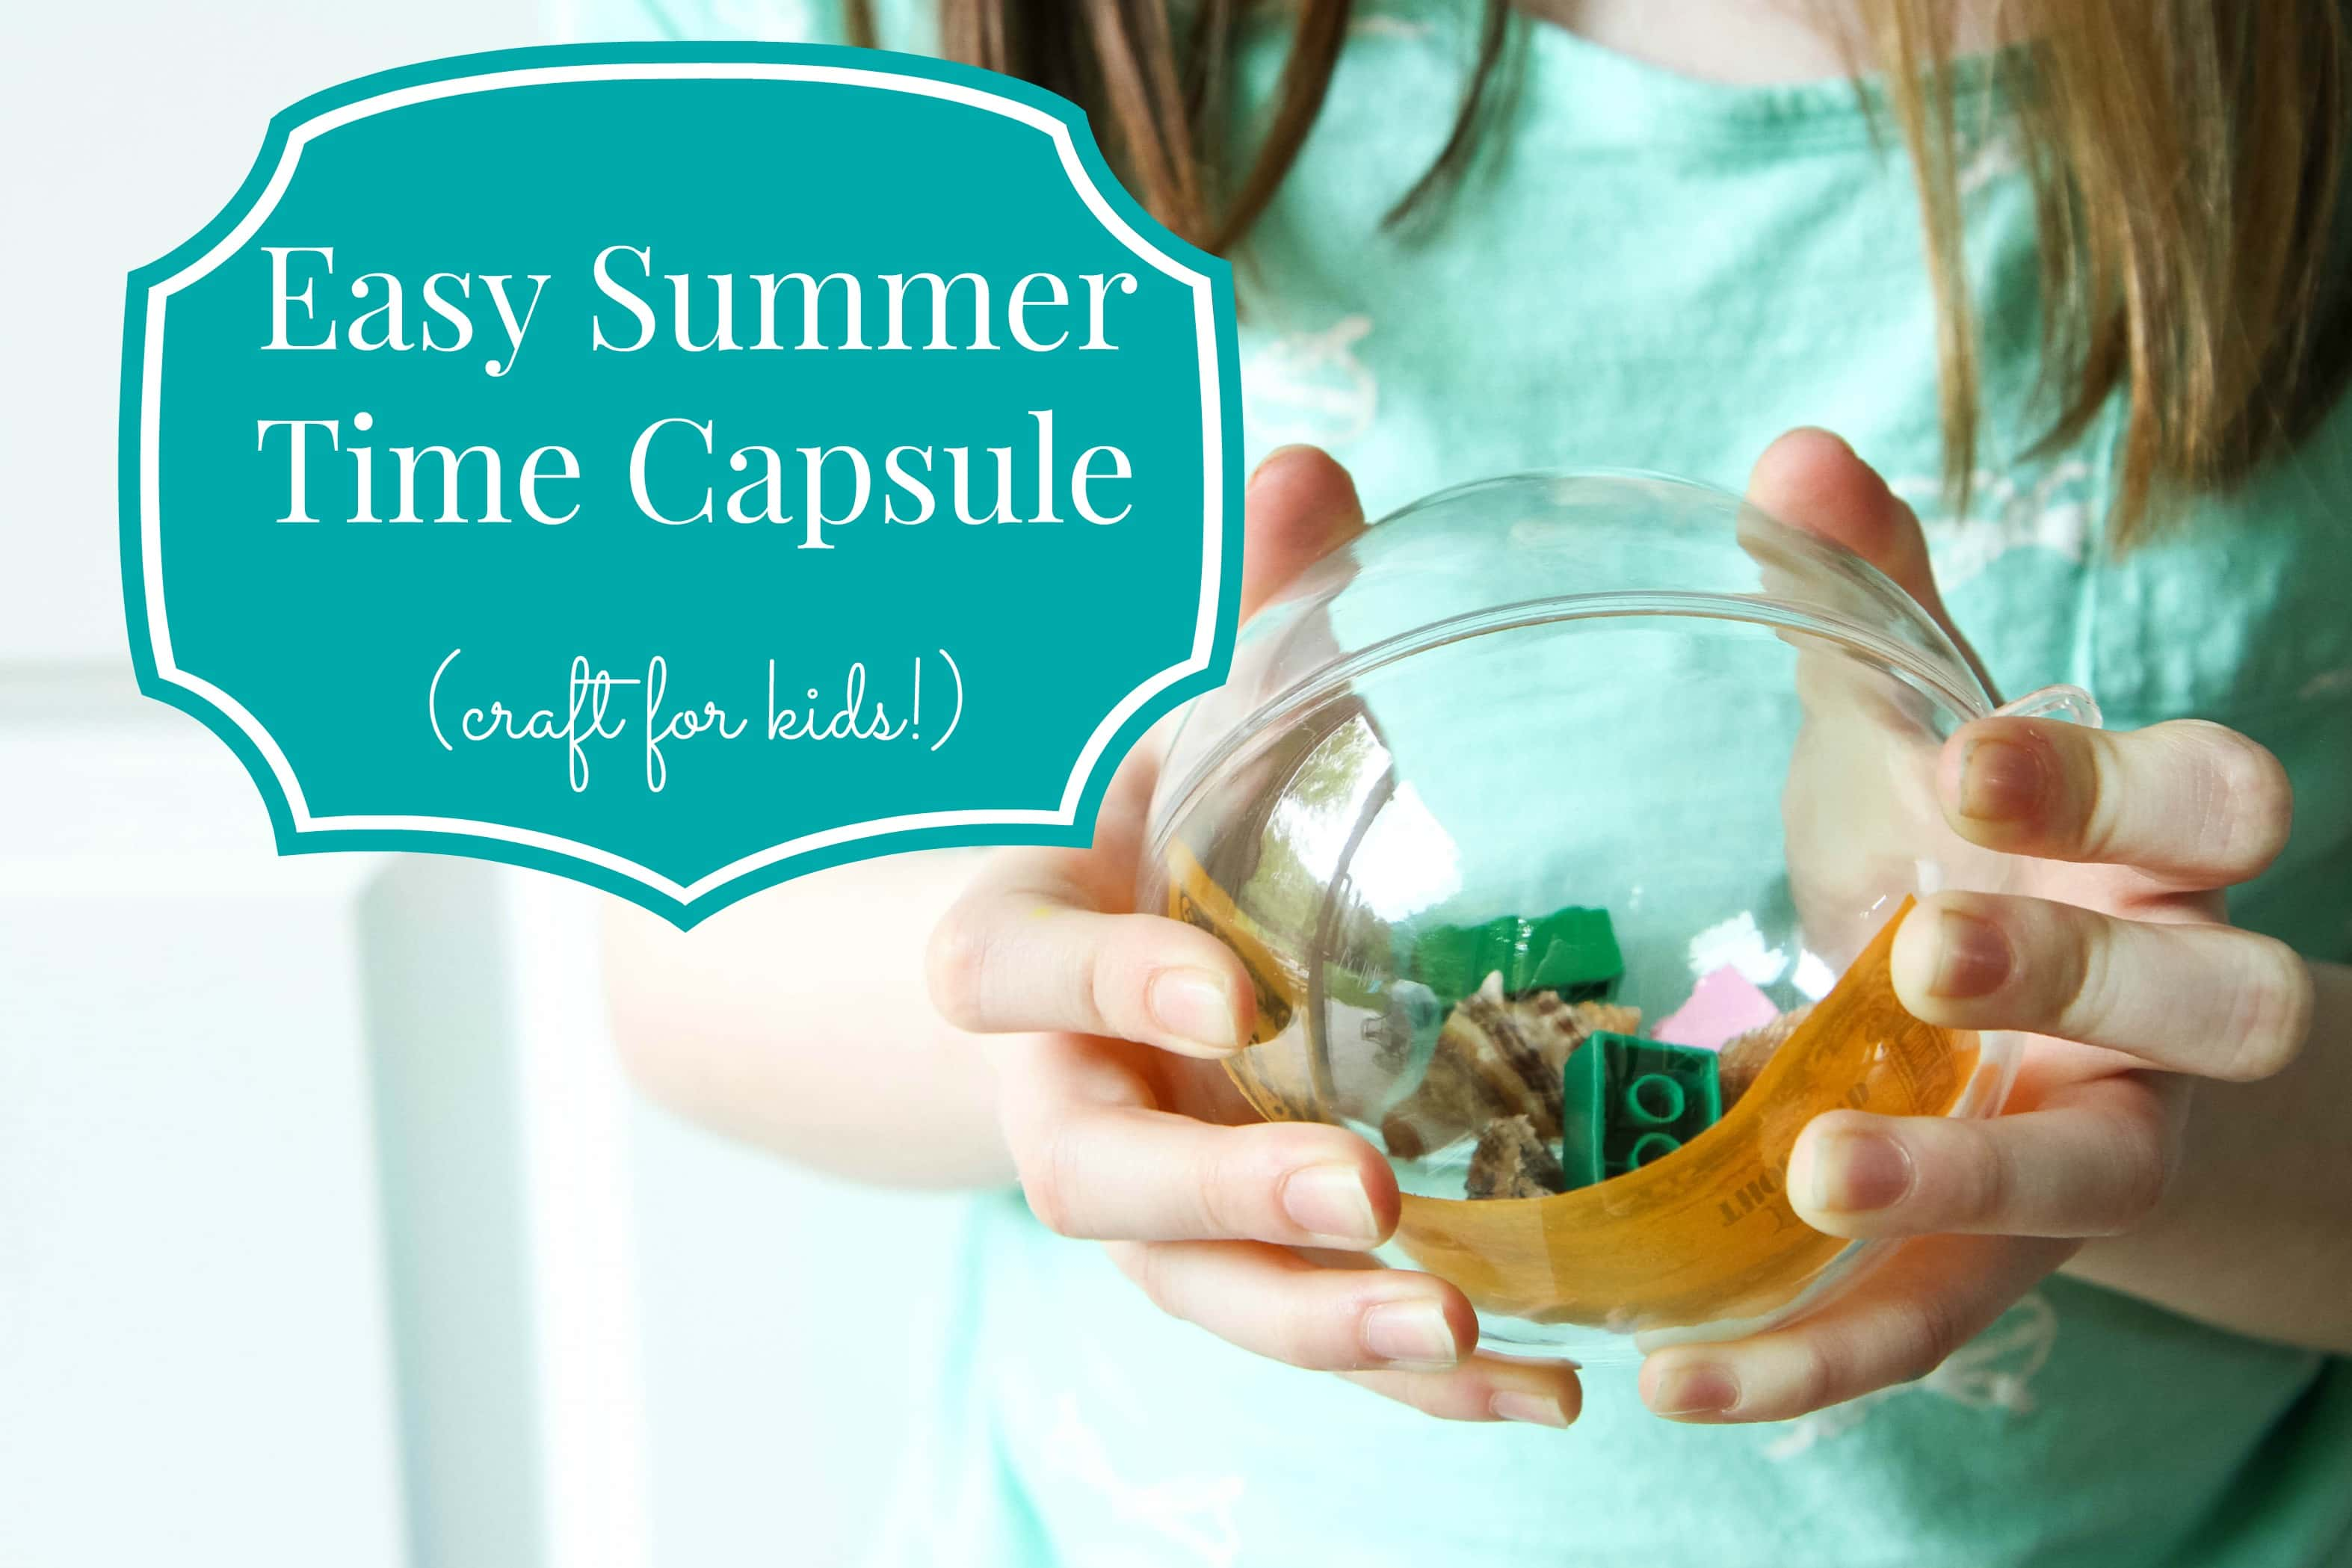 Easy DIY Summer Time Capsule for Kids from MomAdvice.com.